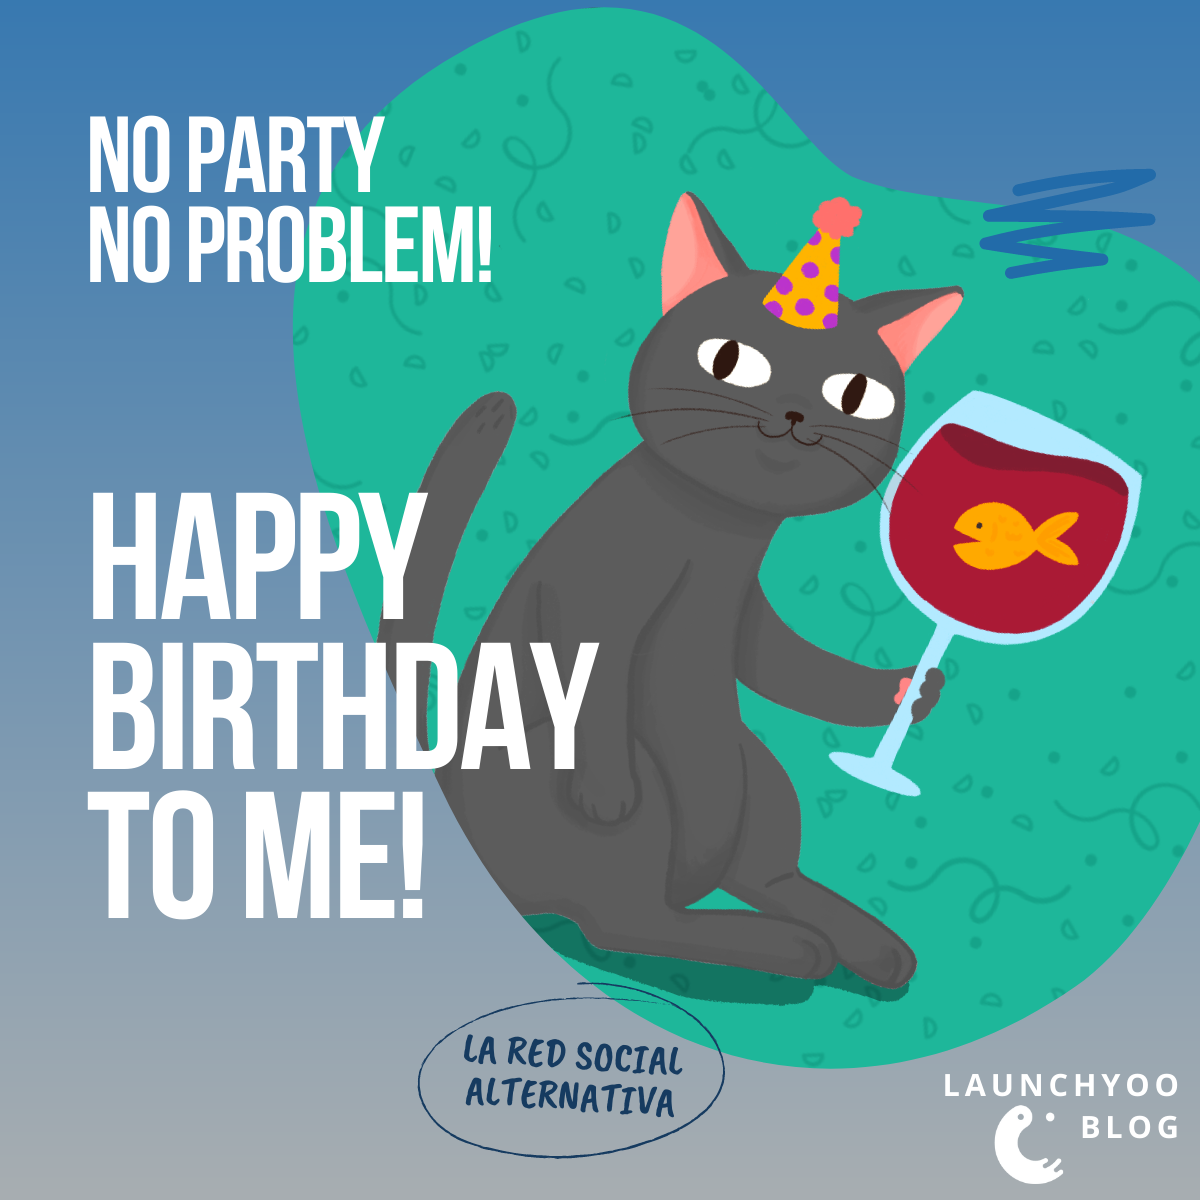 Happy birthday Launchyoo!